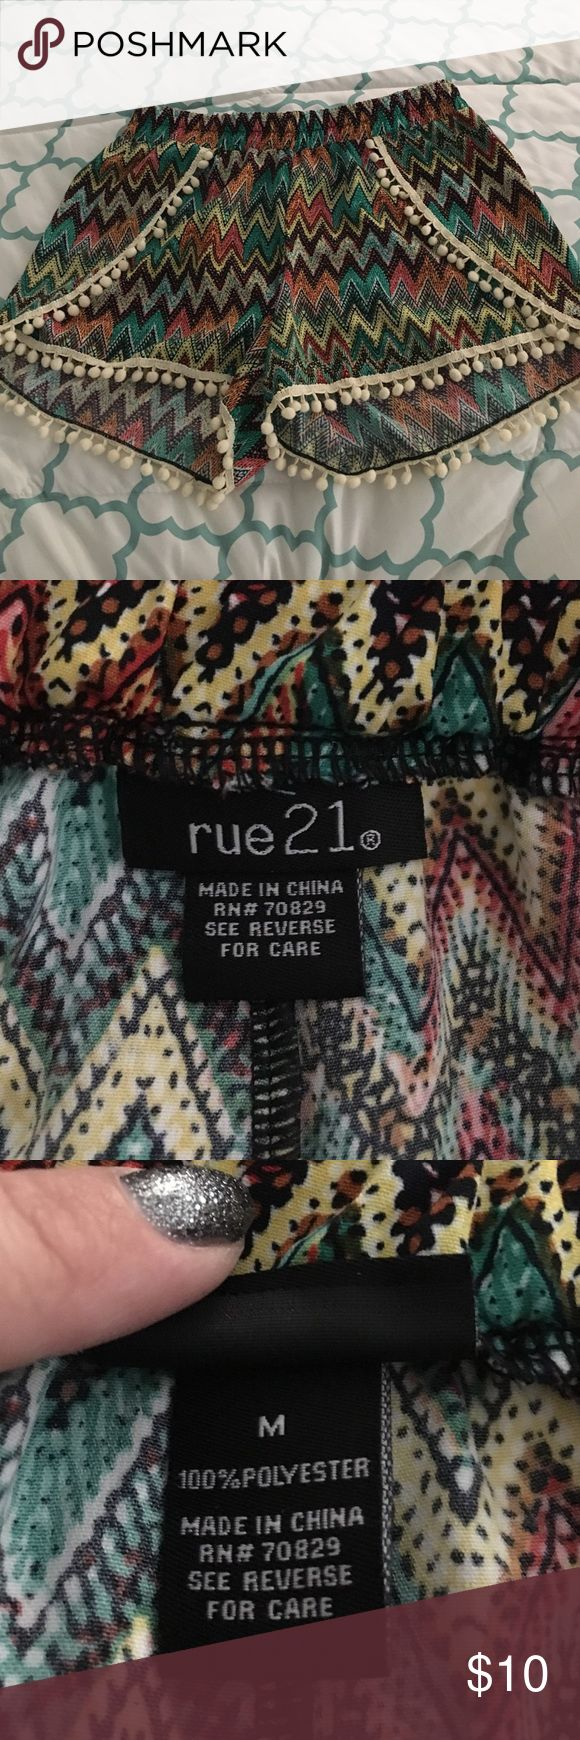 Multi color shorts Multi colored shorts .. Brand new . Worn once Rue 21 Shorts